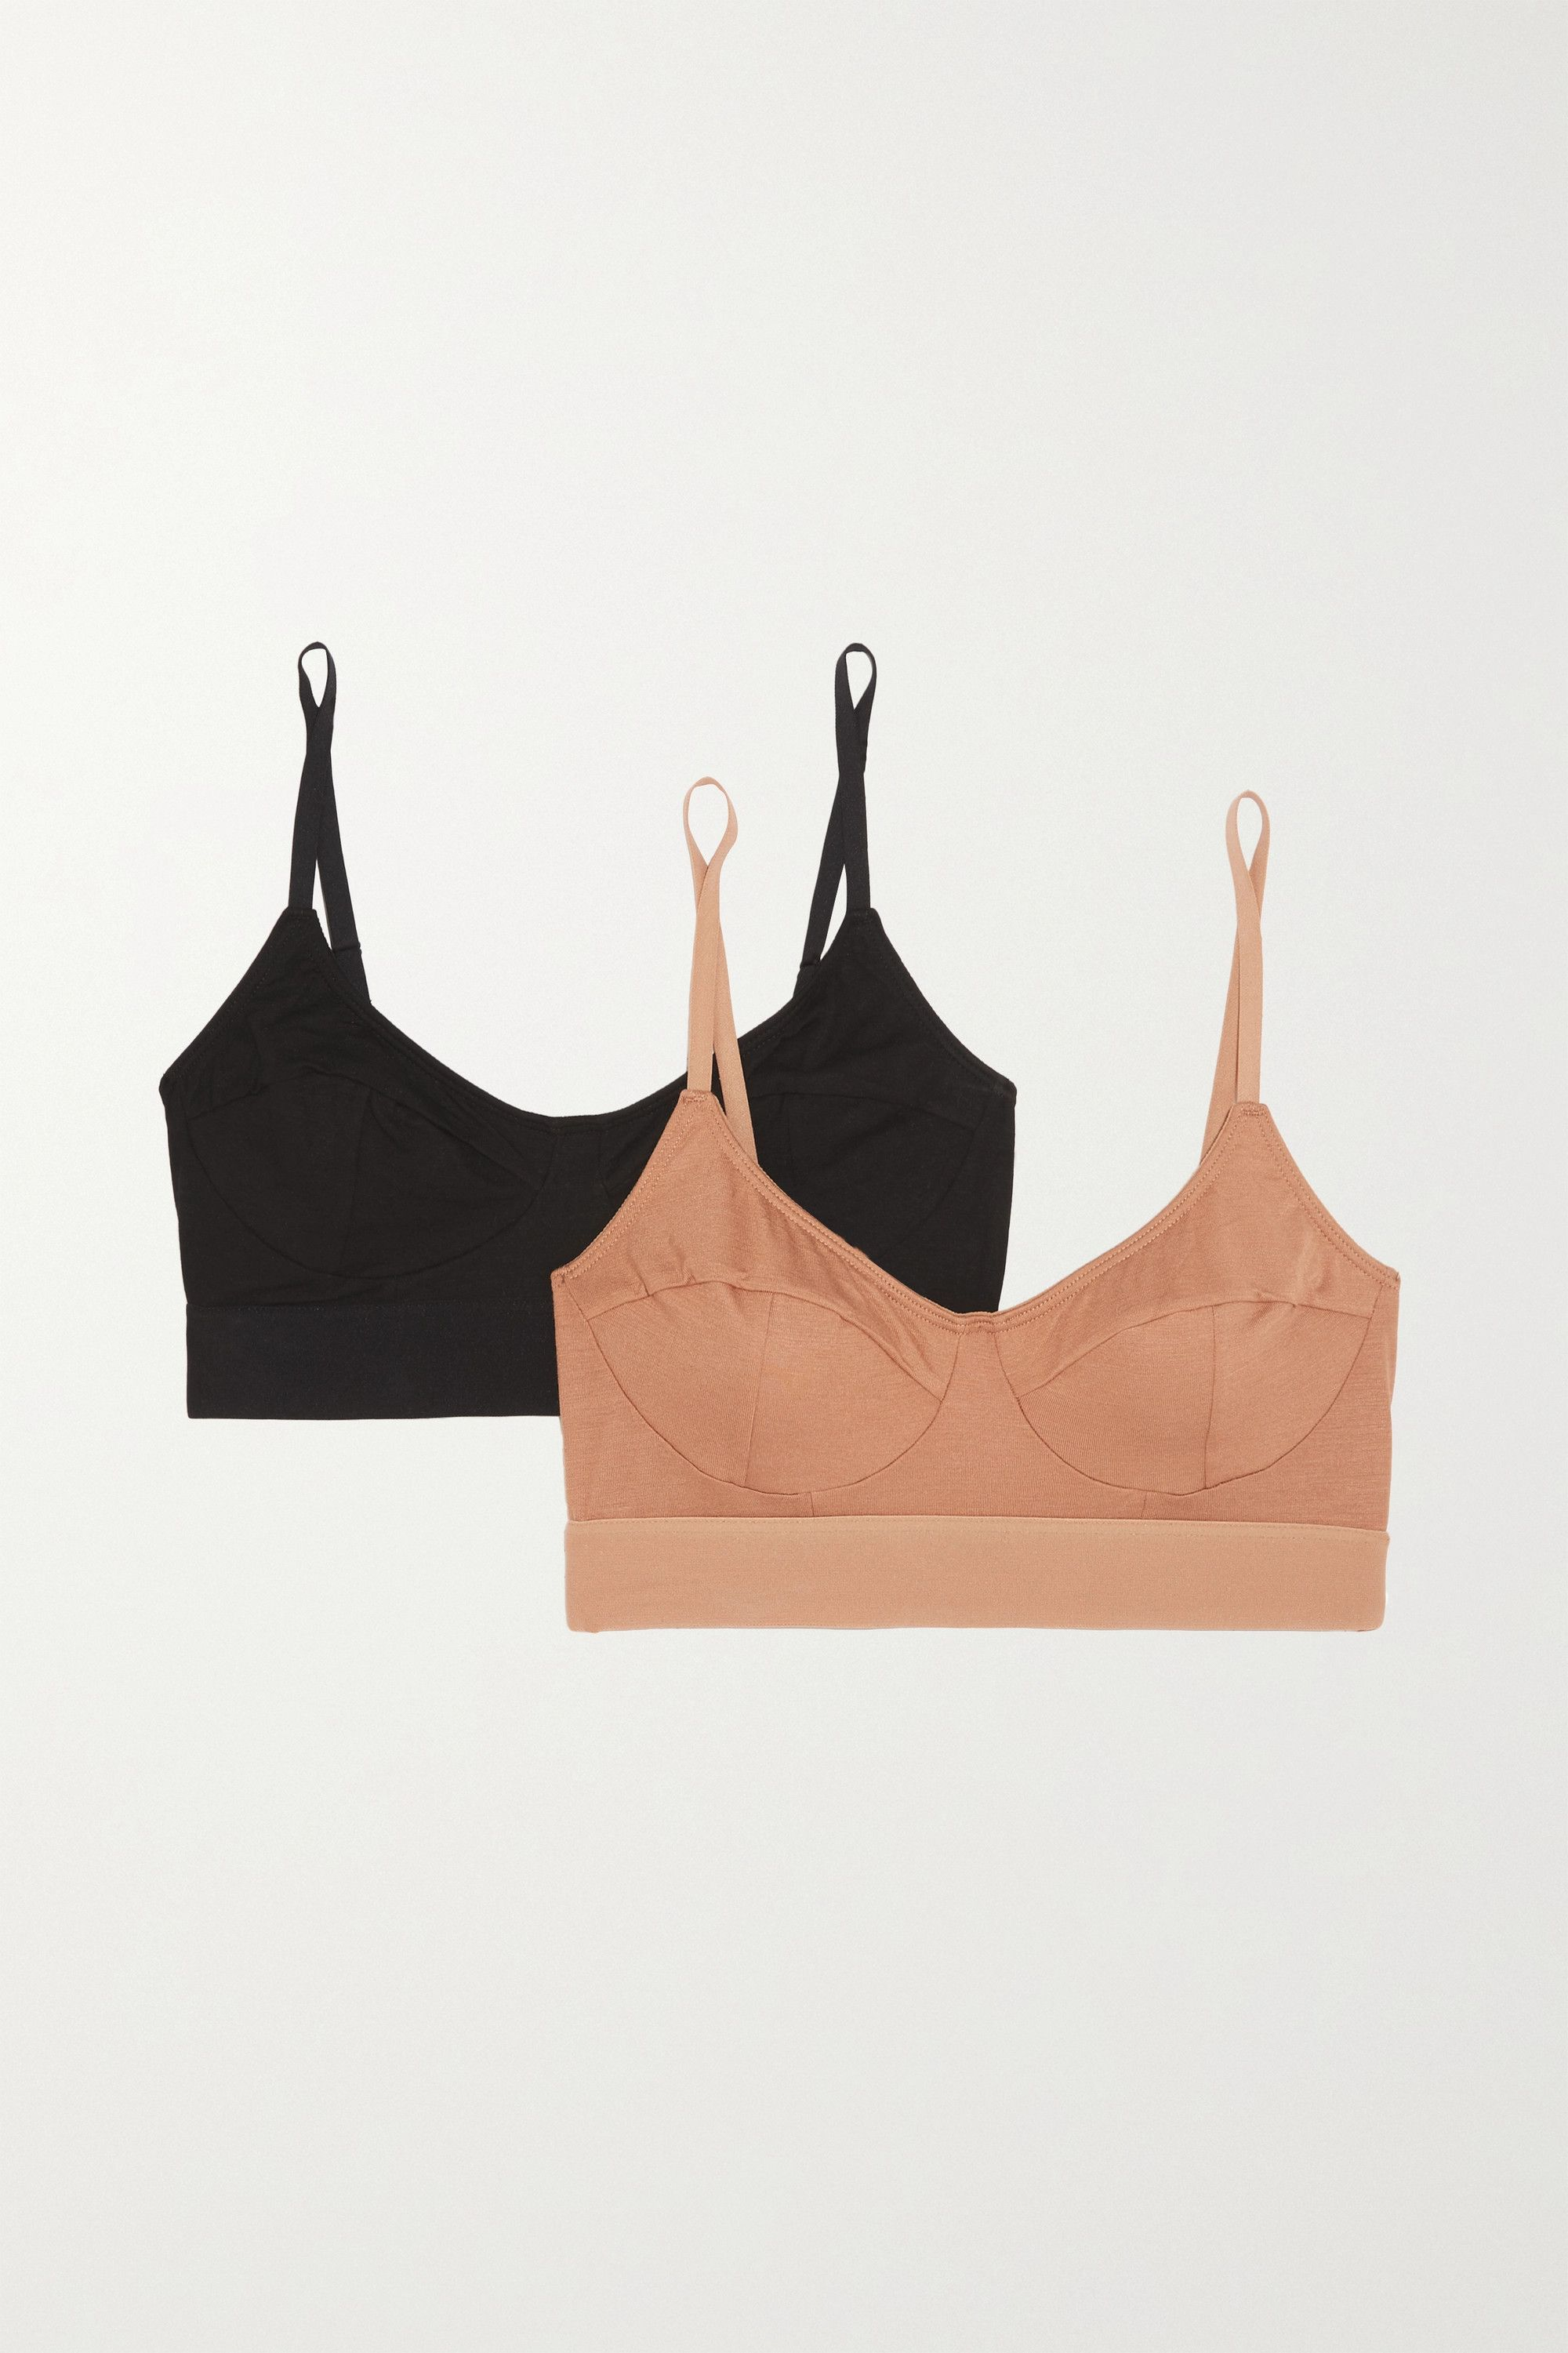 A Lingerie Expert Just Told Me This Is the Comfy Bra Style Women Want Right Now